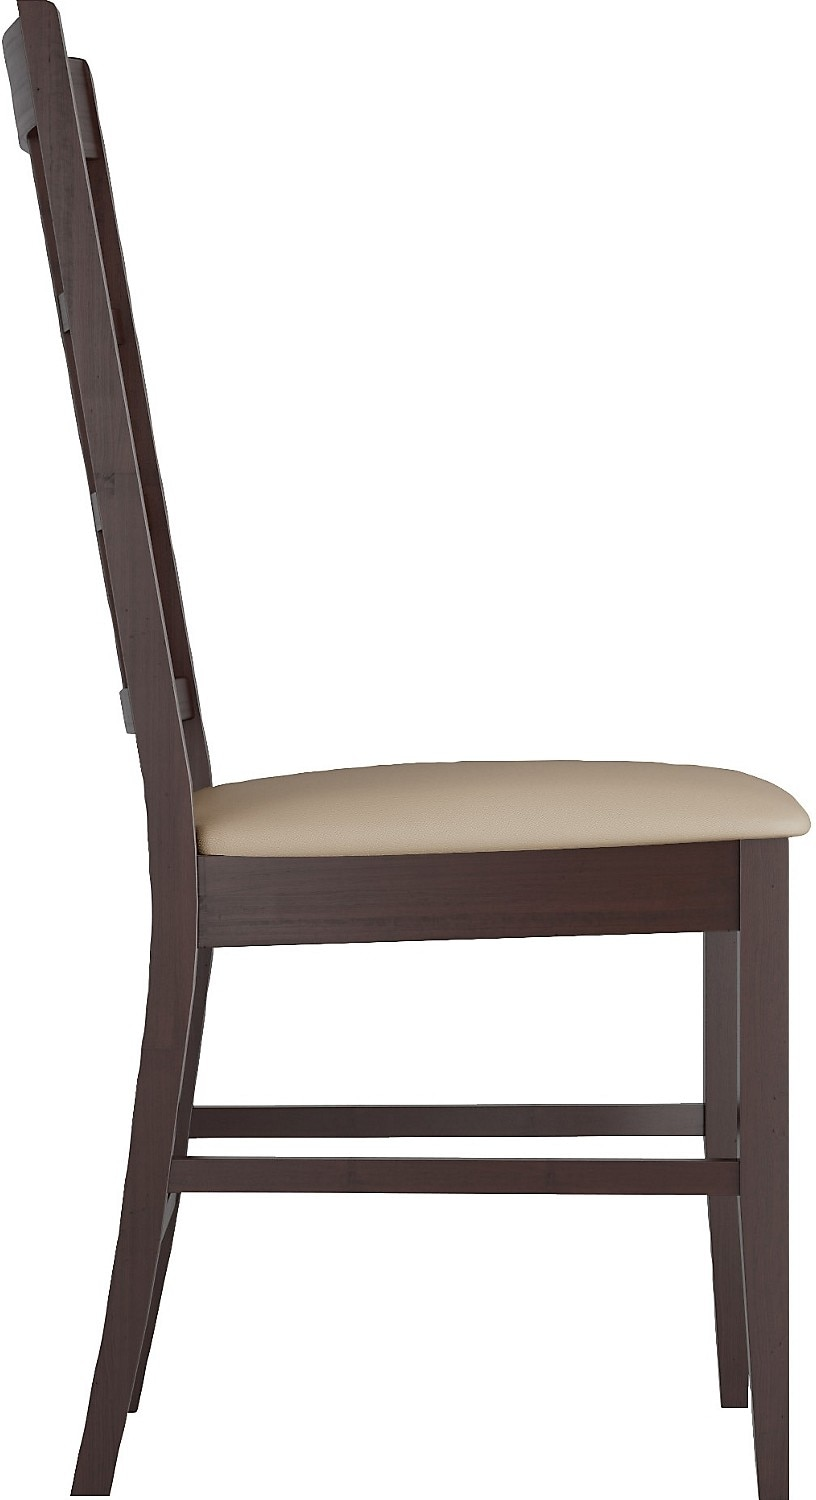 Chaise de salle manger atwood cappuccino si ge en for Siege salle a manger